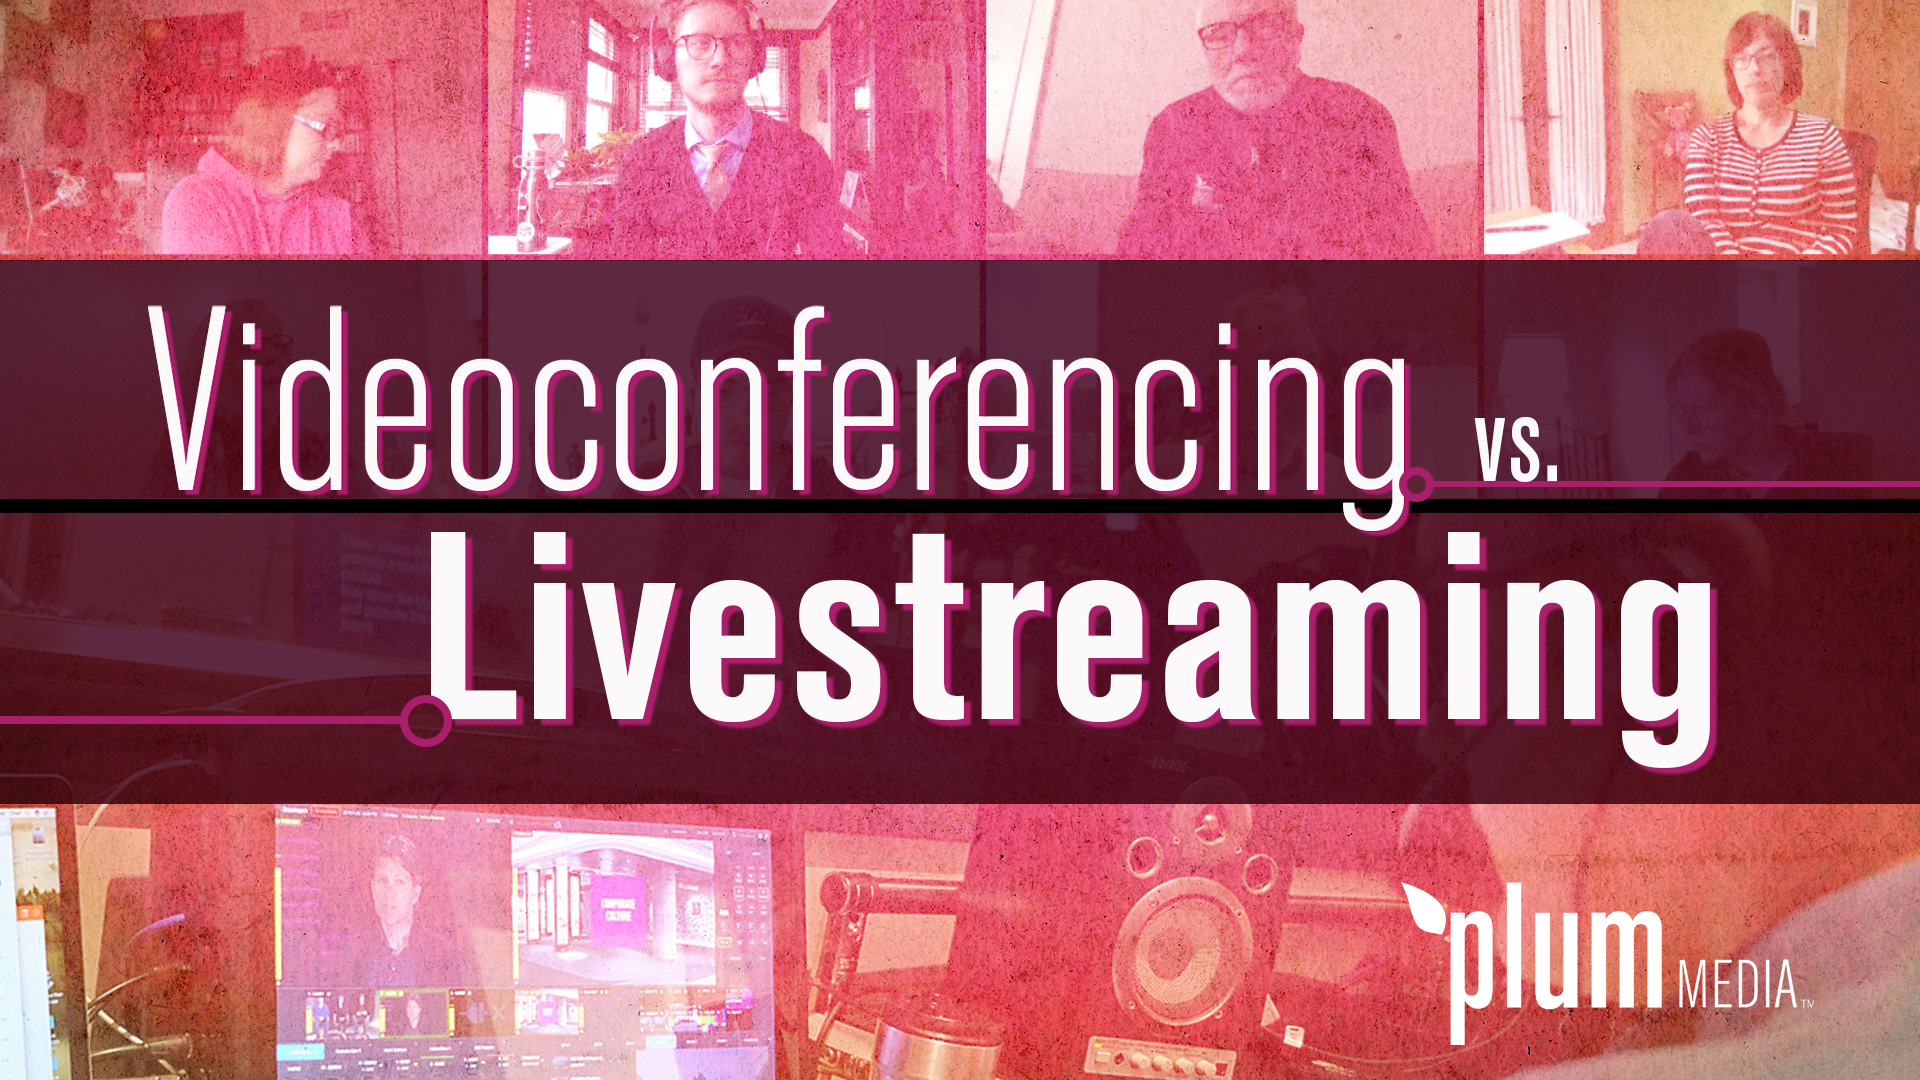 Videoconferencing vs livestreaming_v3